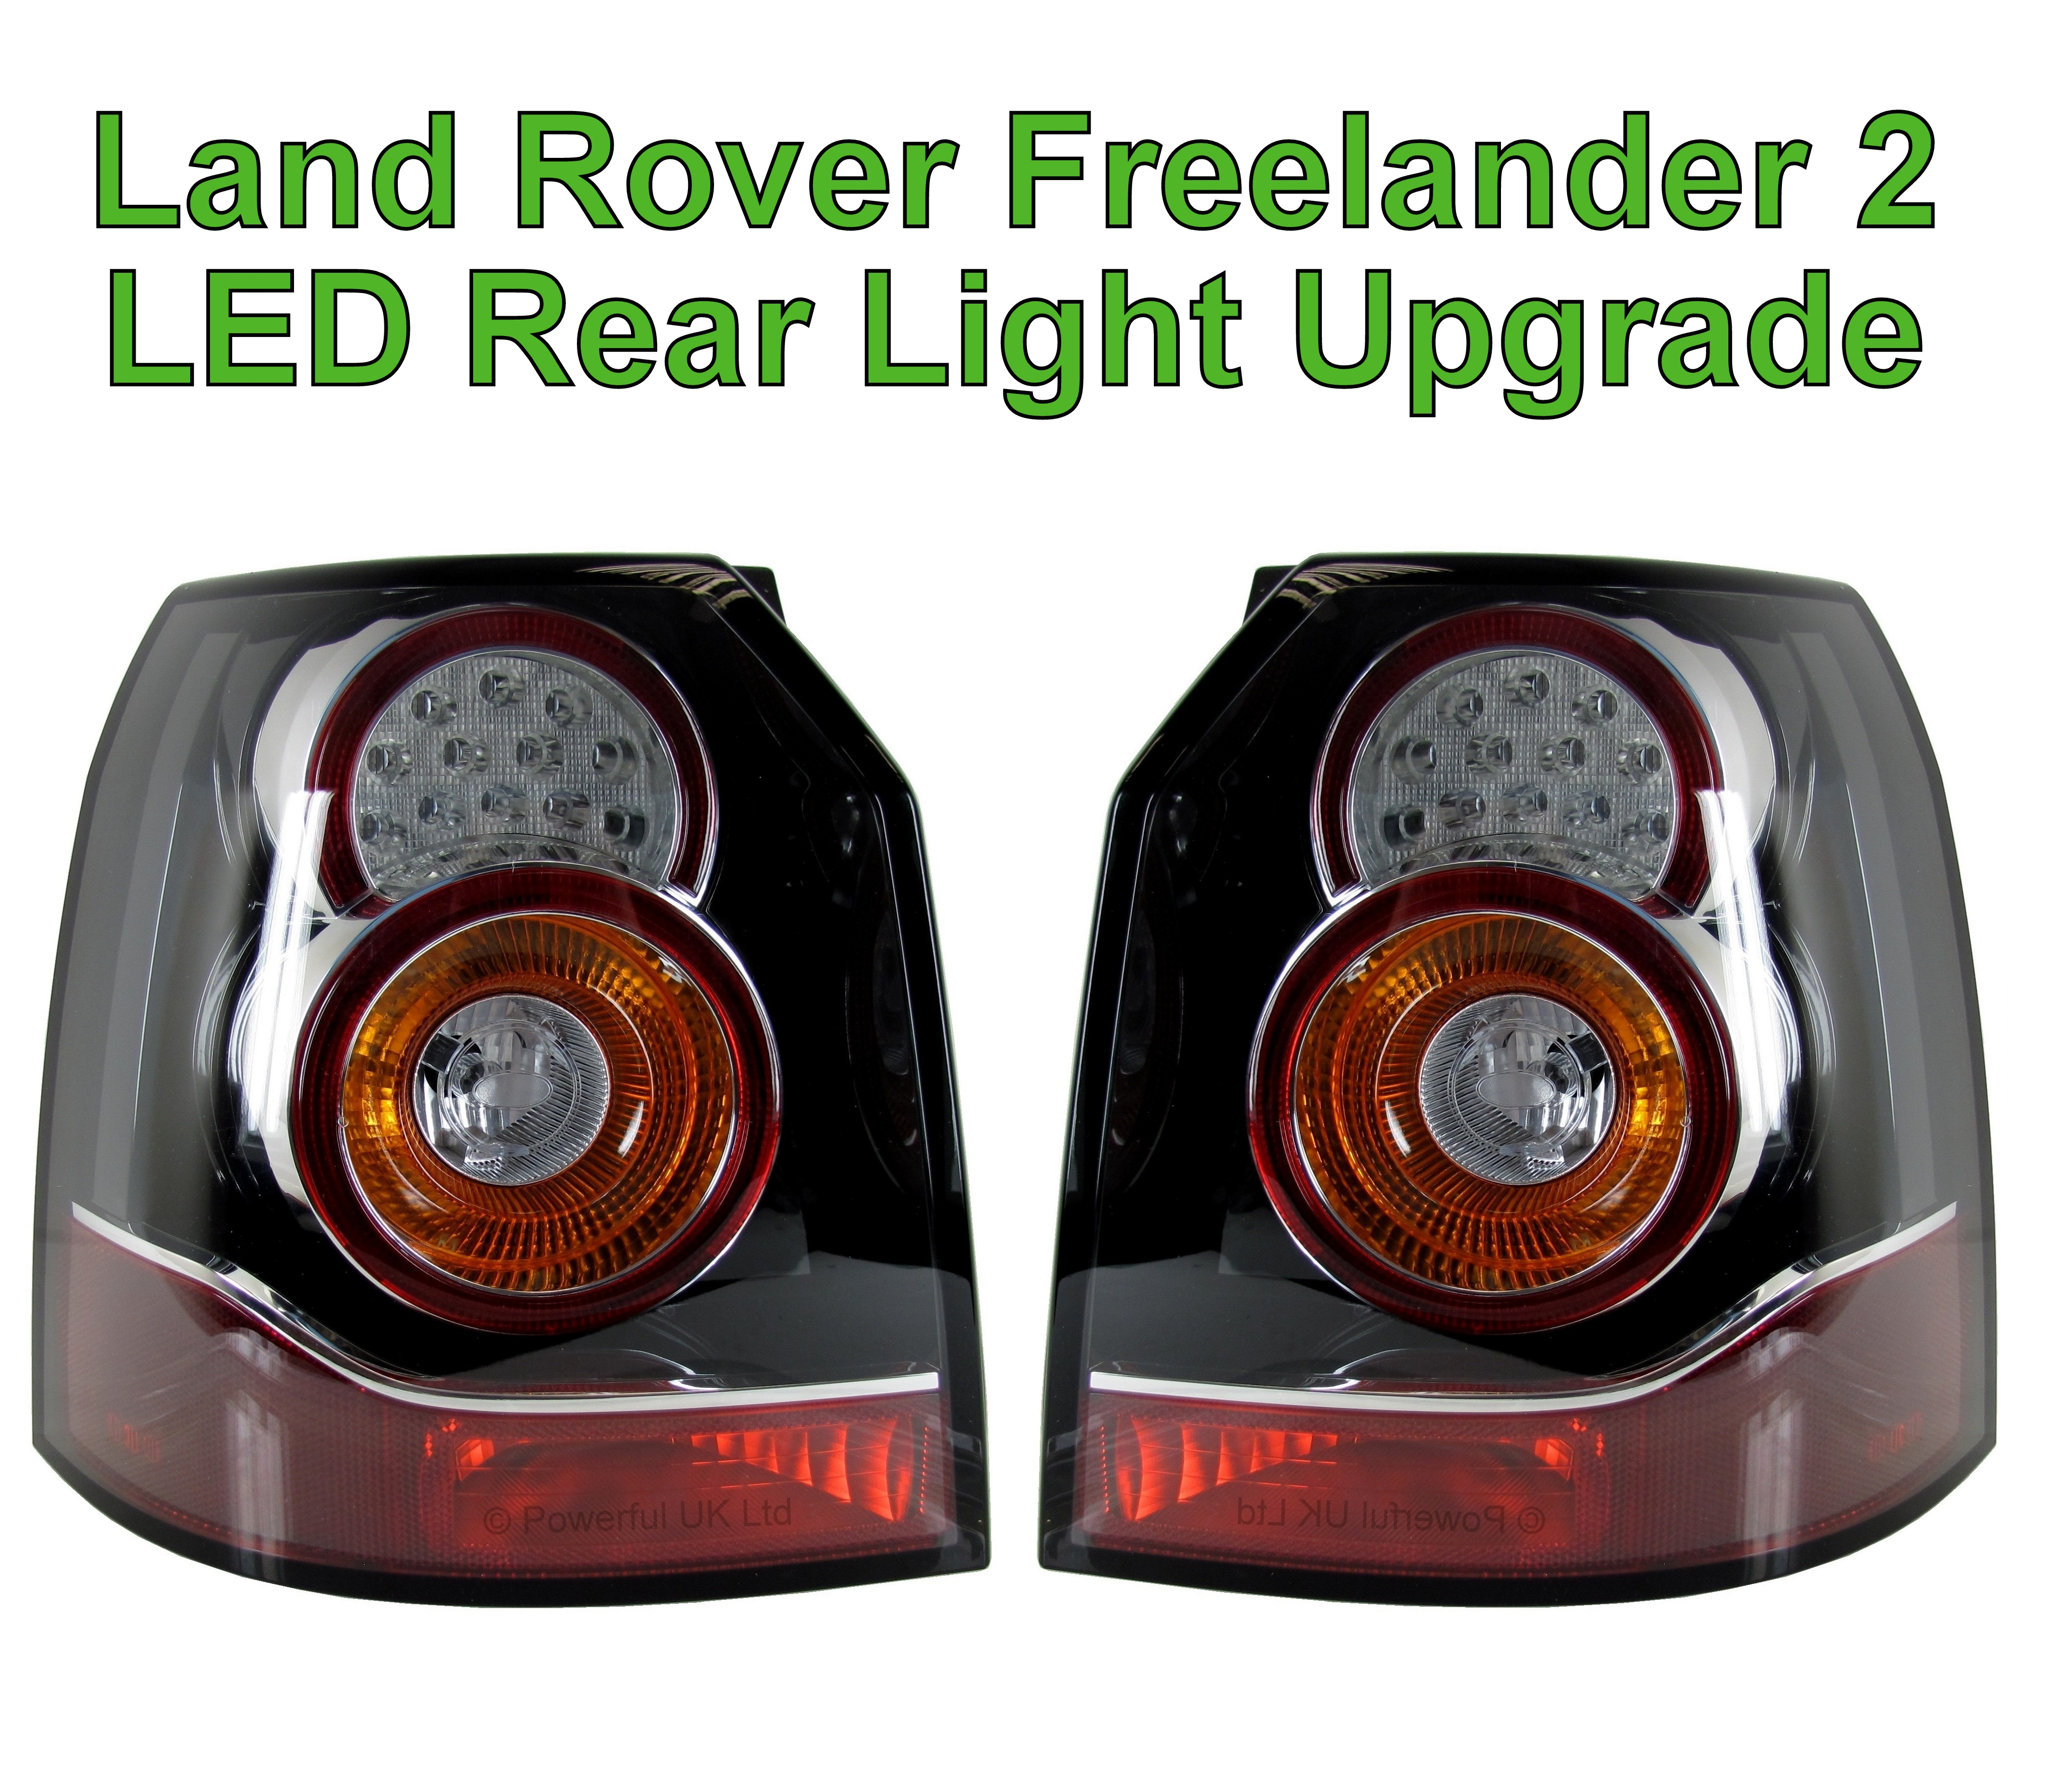 Land Rover Freelander 2 LED Rear Light Tail Lamp Upgrade